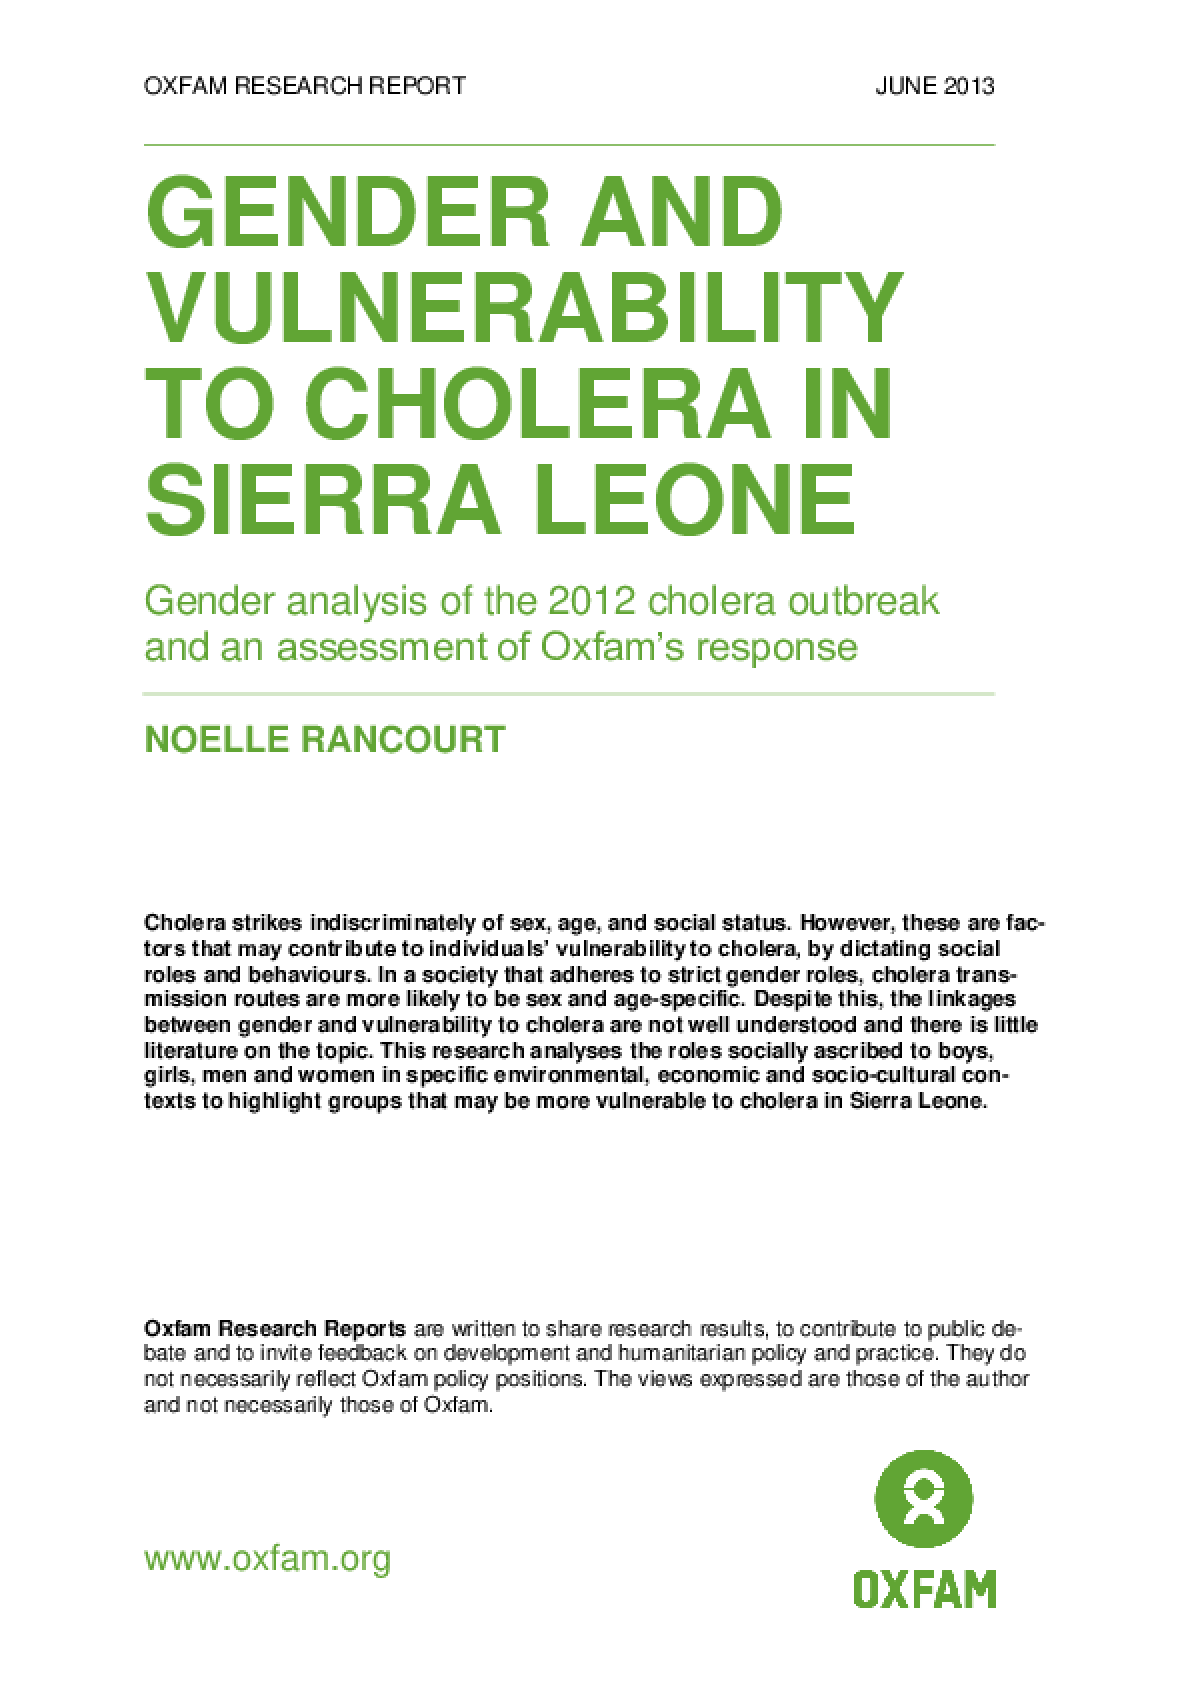 Gender and Vulnerability to Cholera in Sierra Leone: Gender analysis of the 2012 cholera outbreak and an assessment of Oxfam's response